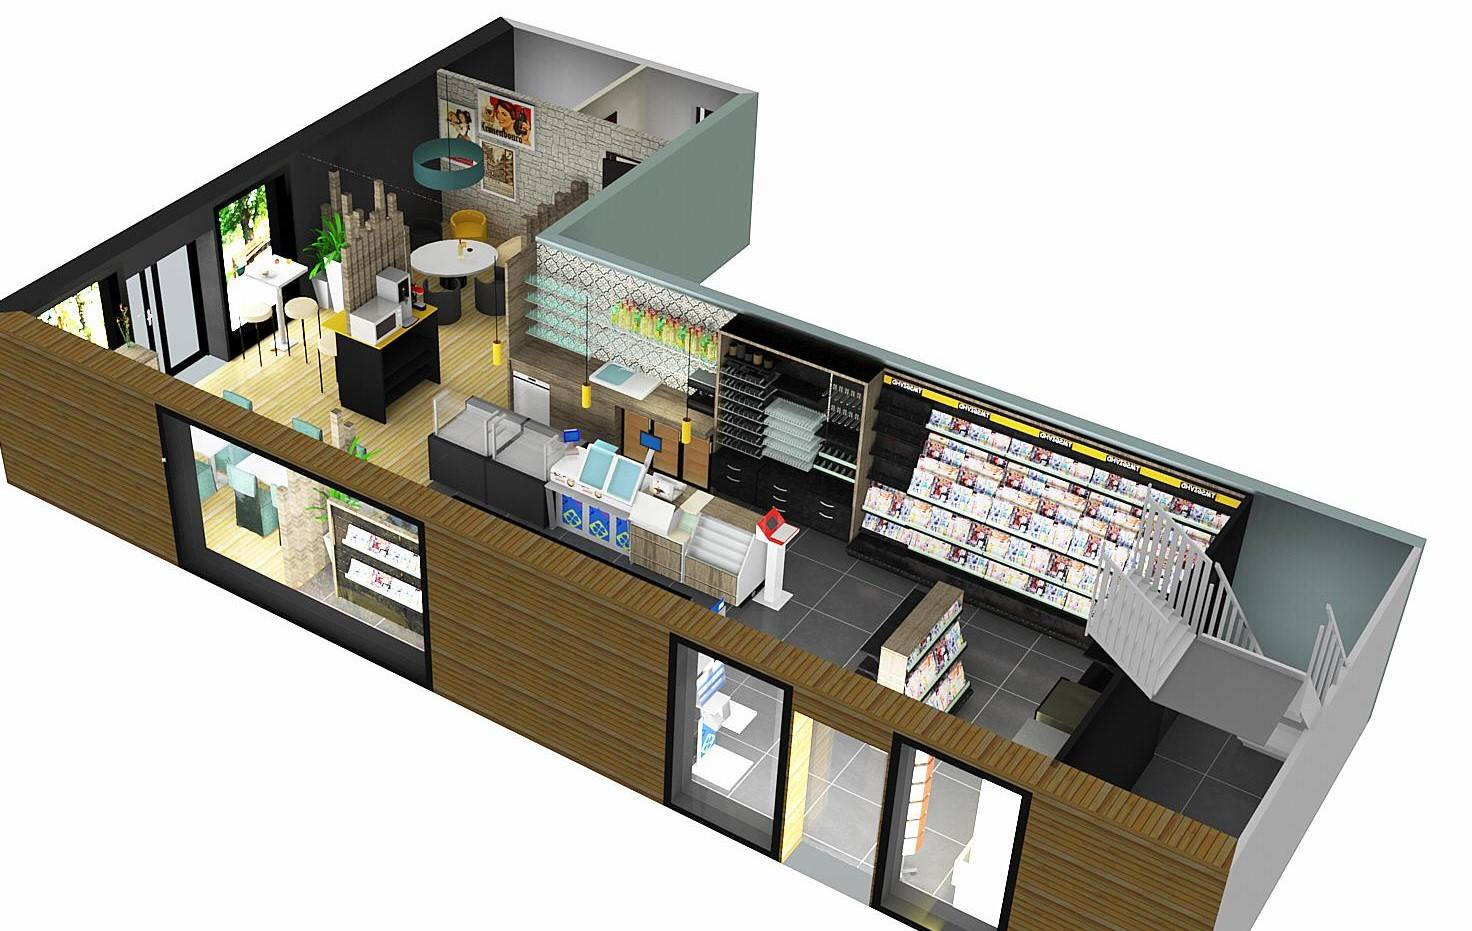 pers seebach 3D tabac restaurant presse/a2m diffusion